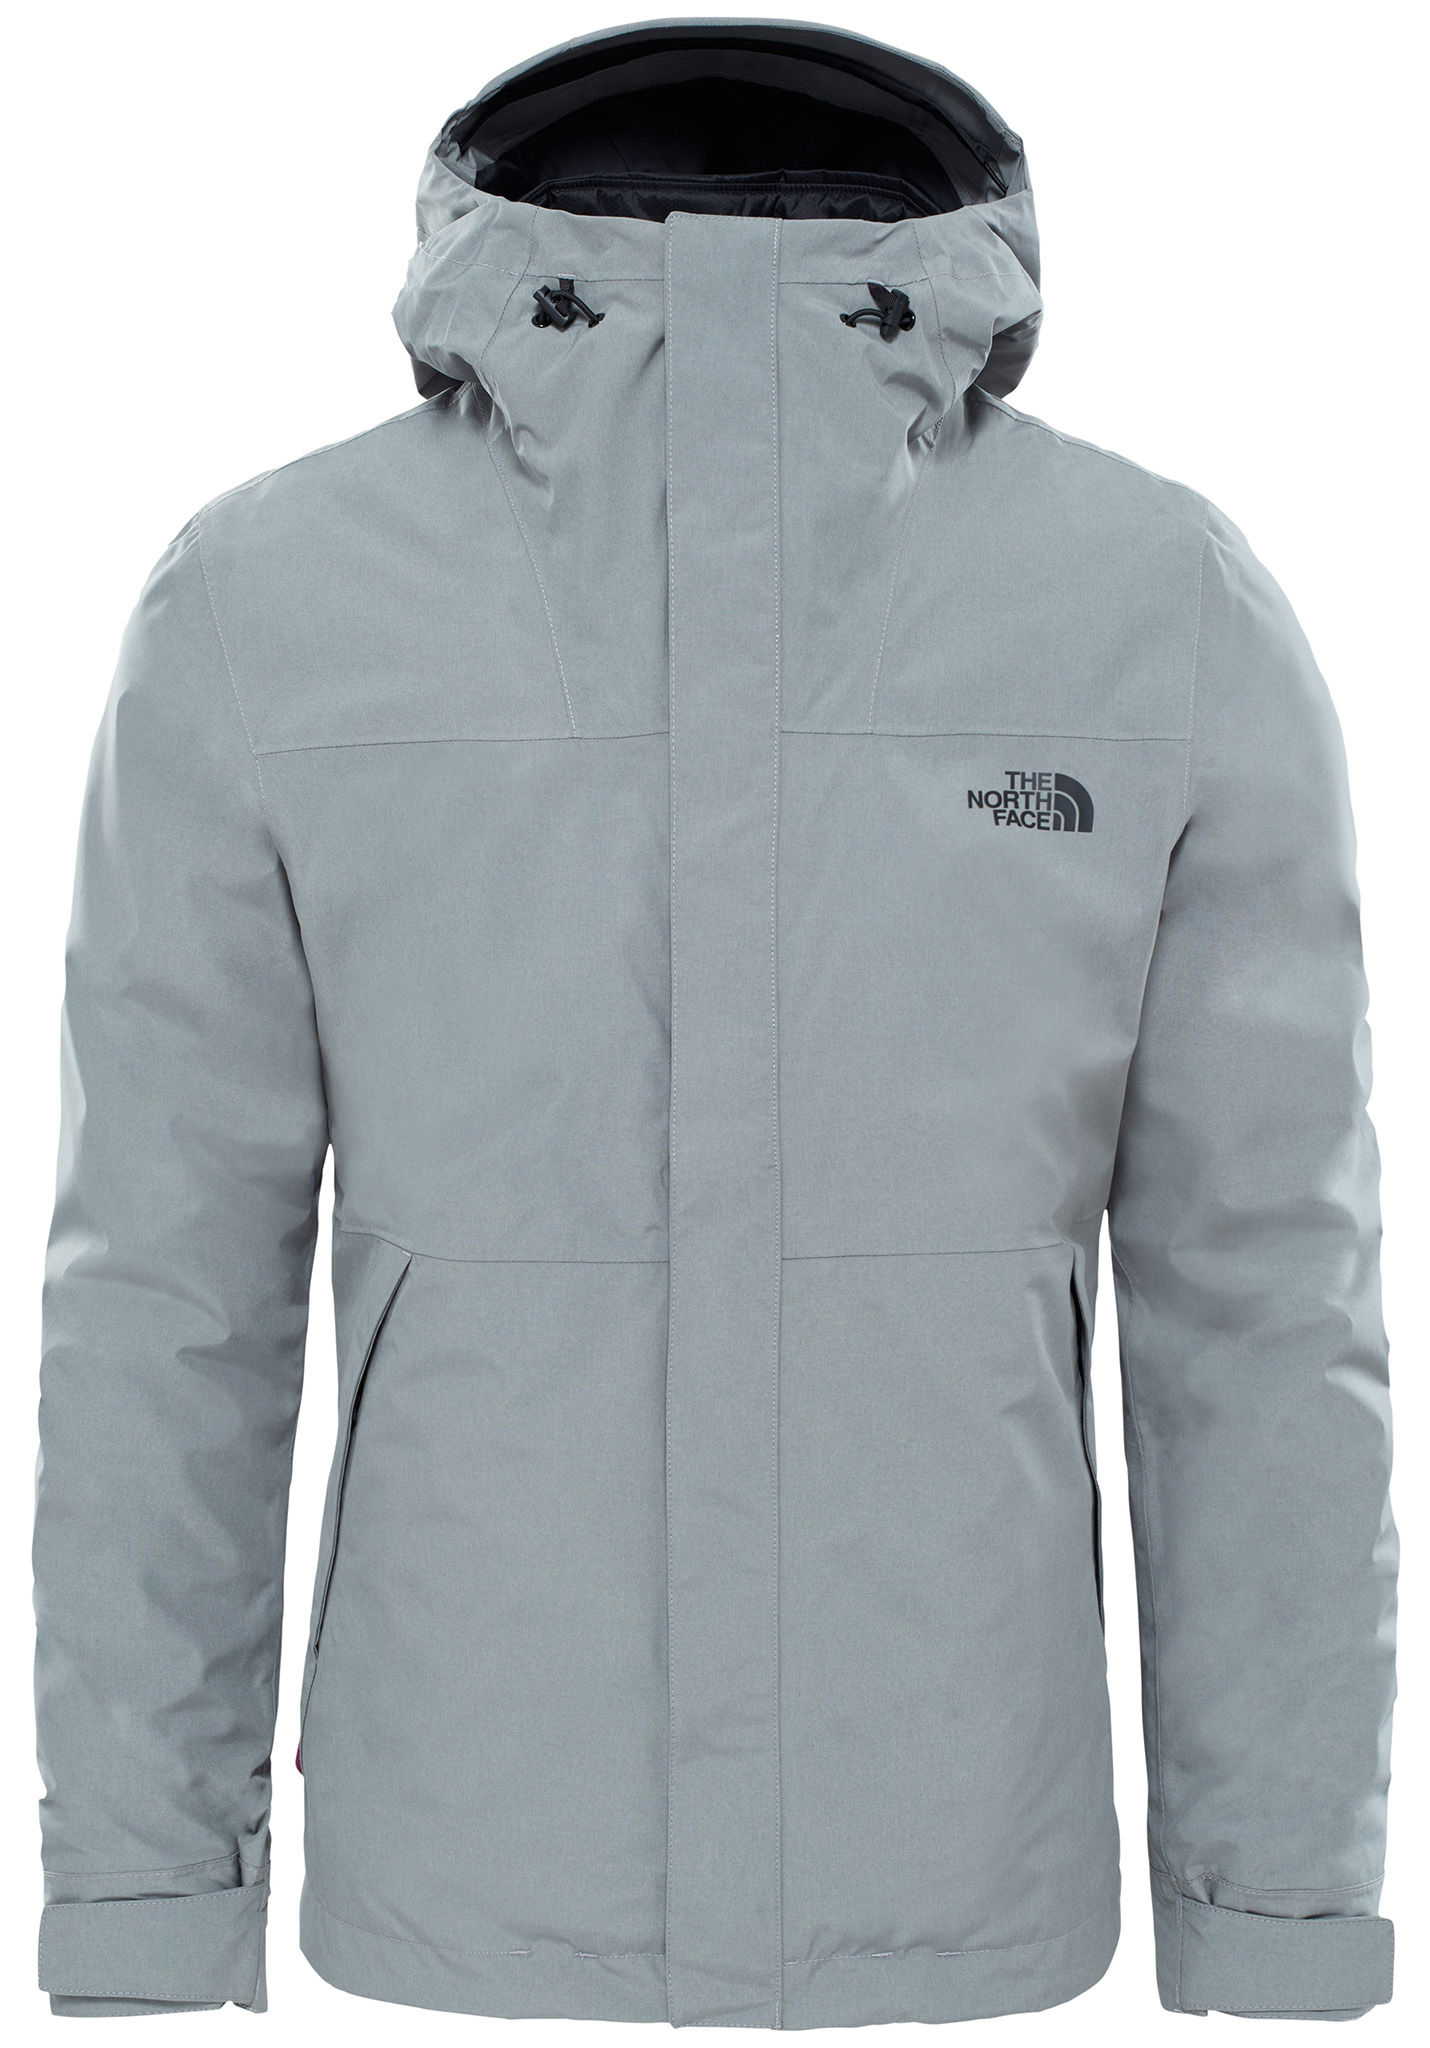 THE NORTH FACE Naslund Triclimate - Outdoor Jacket for Men - Grey - Planet  Sports 6837c0e4fc11